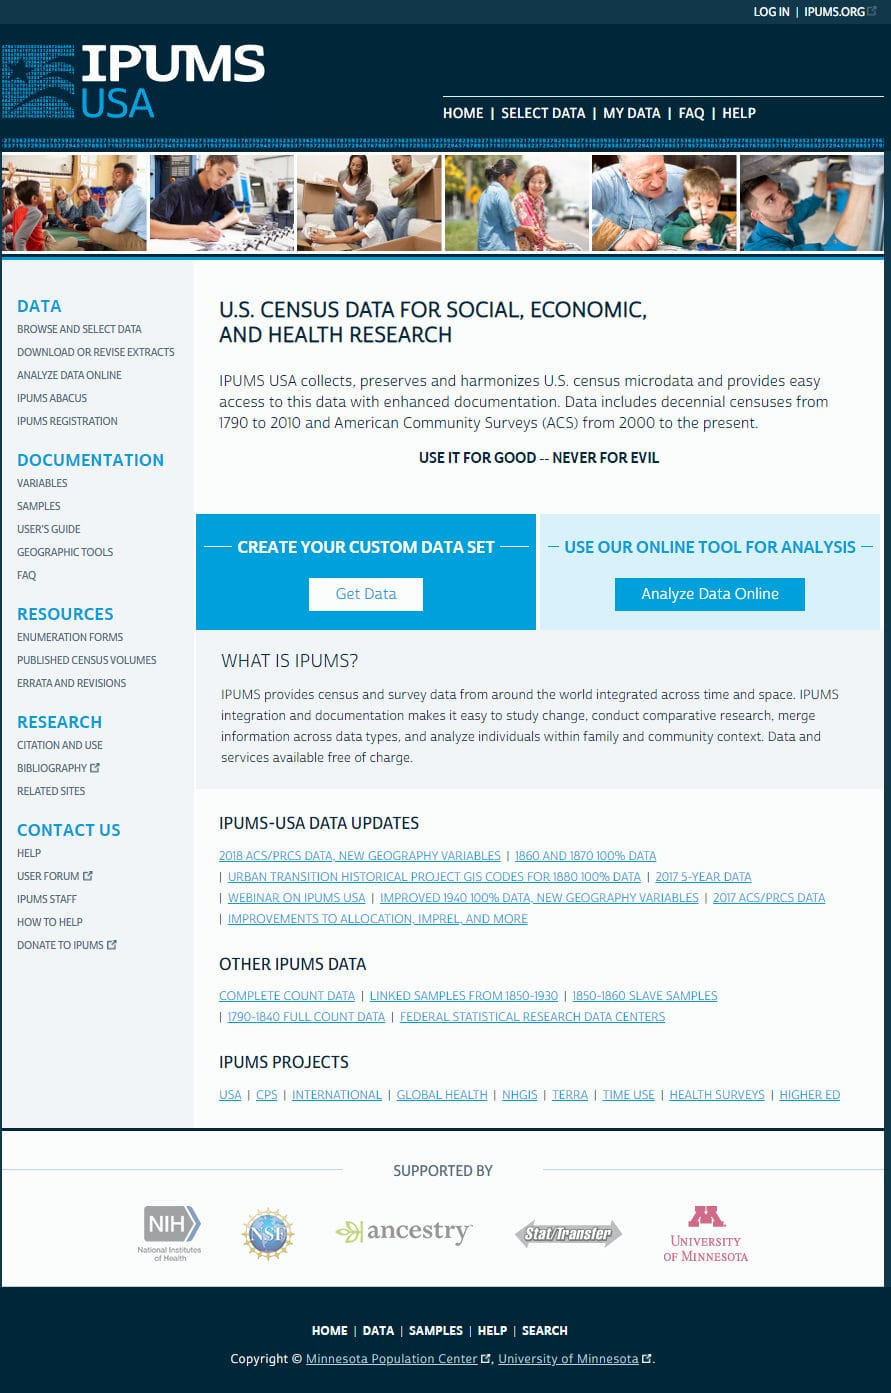 US Census Data for Social, Economic, and Health Research